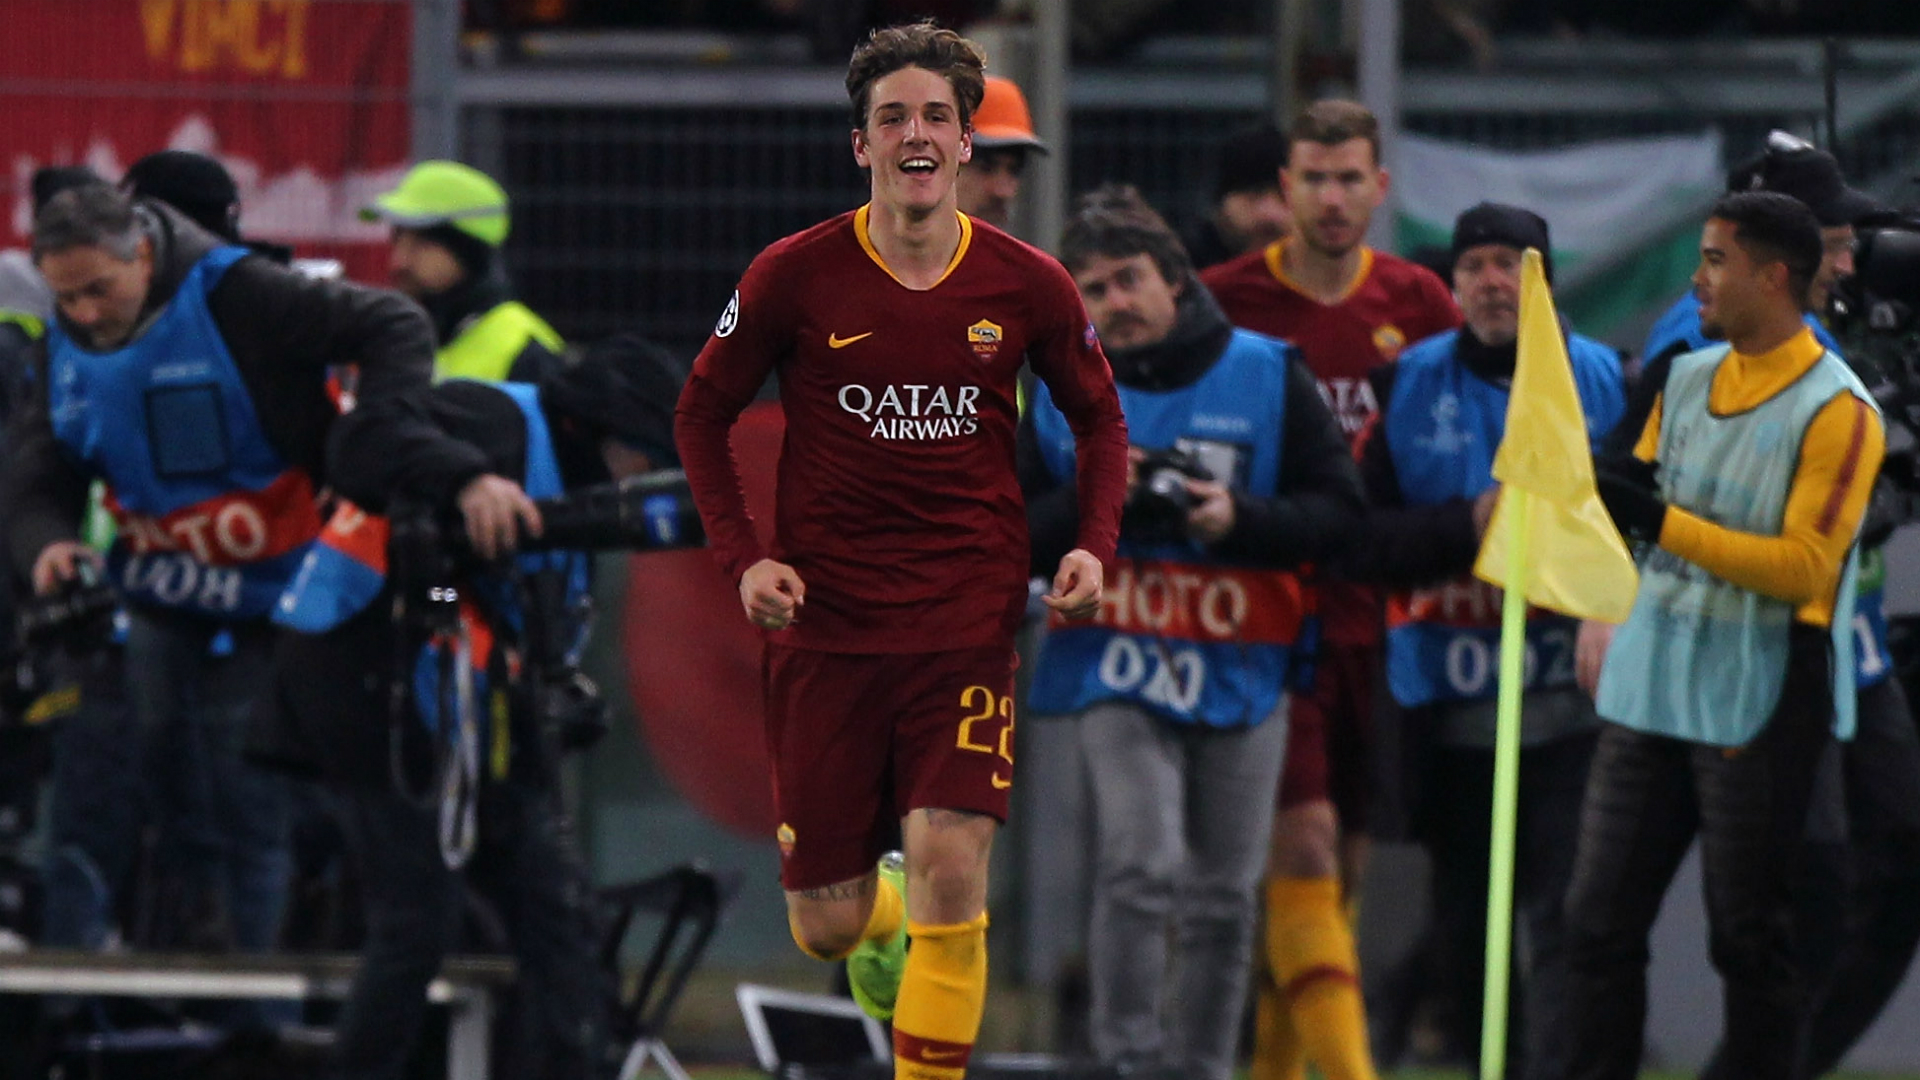 Zaniolo lost for words after Champions League brace lifts Roma